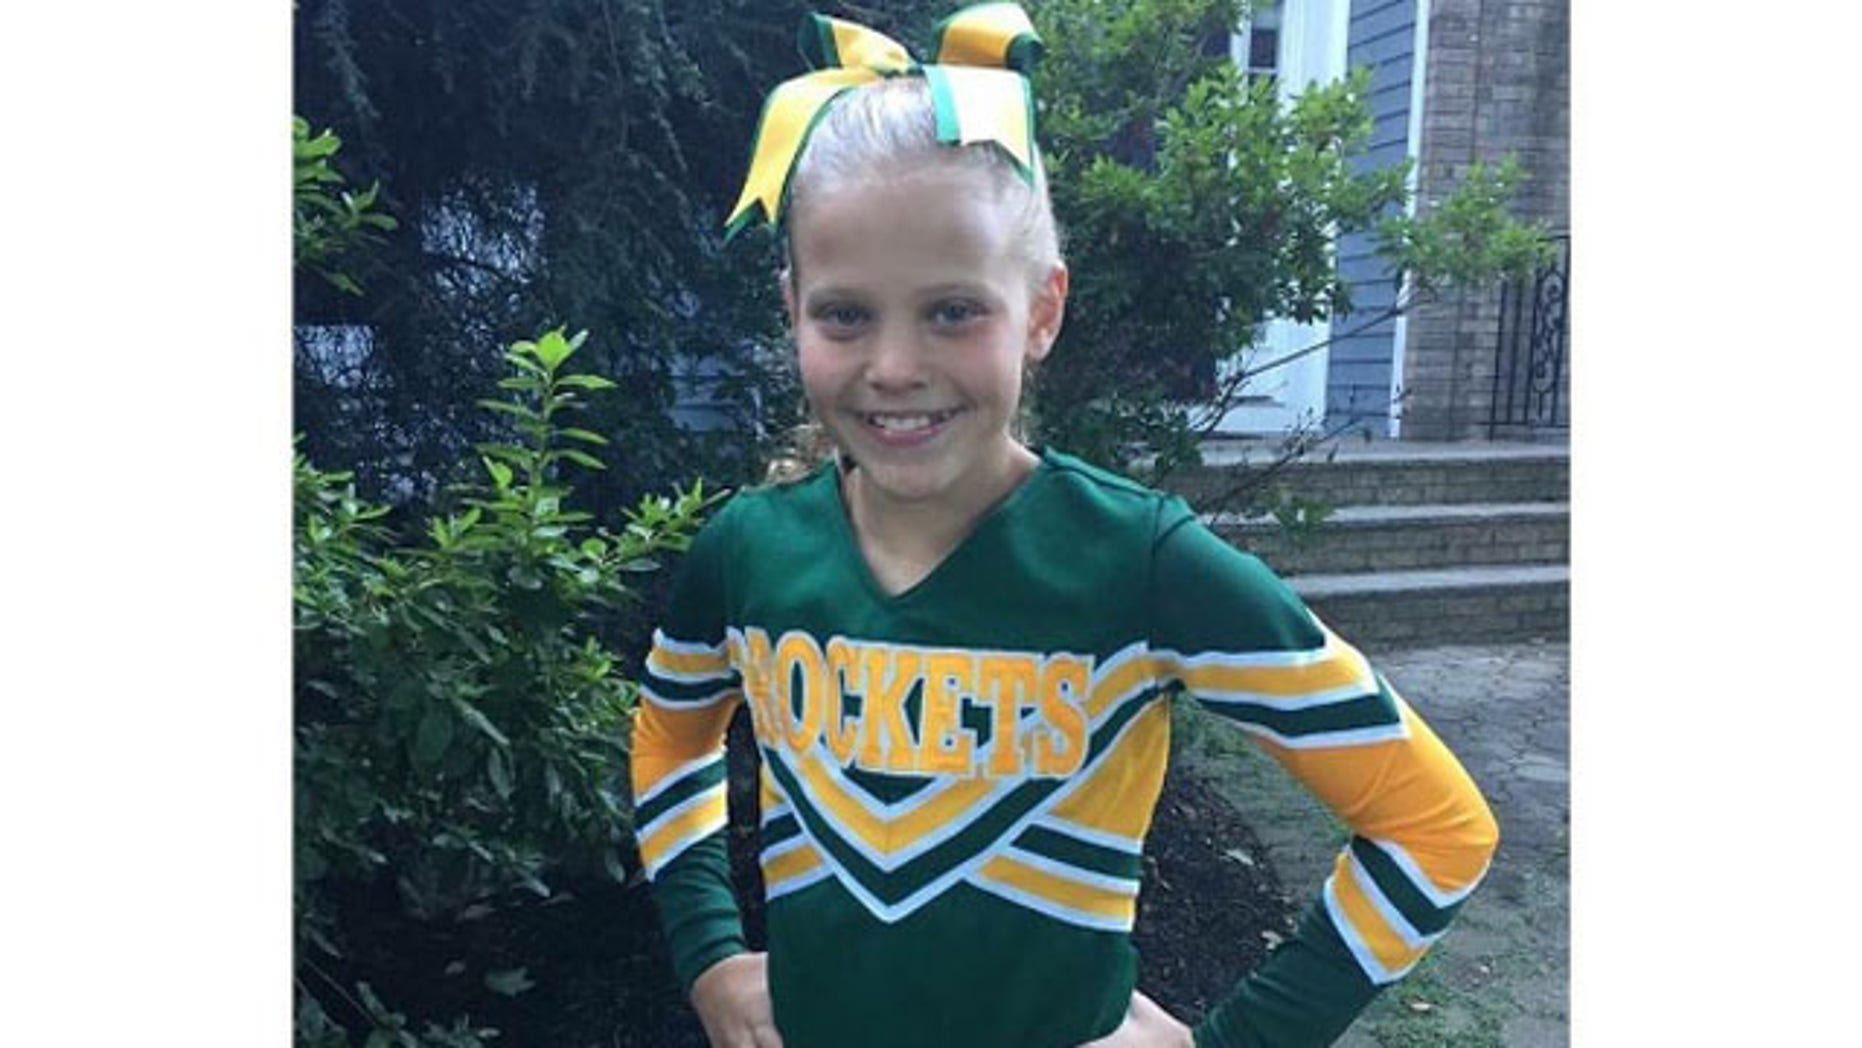 Family of bullied girl who killed herself sues school